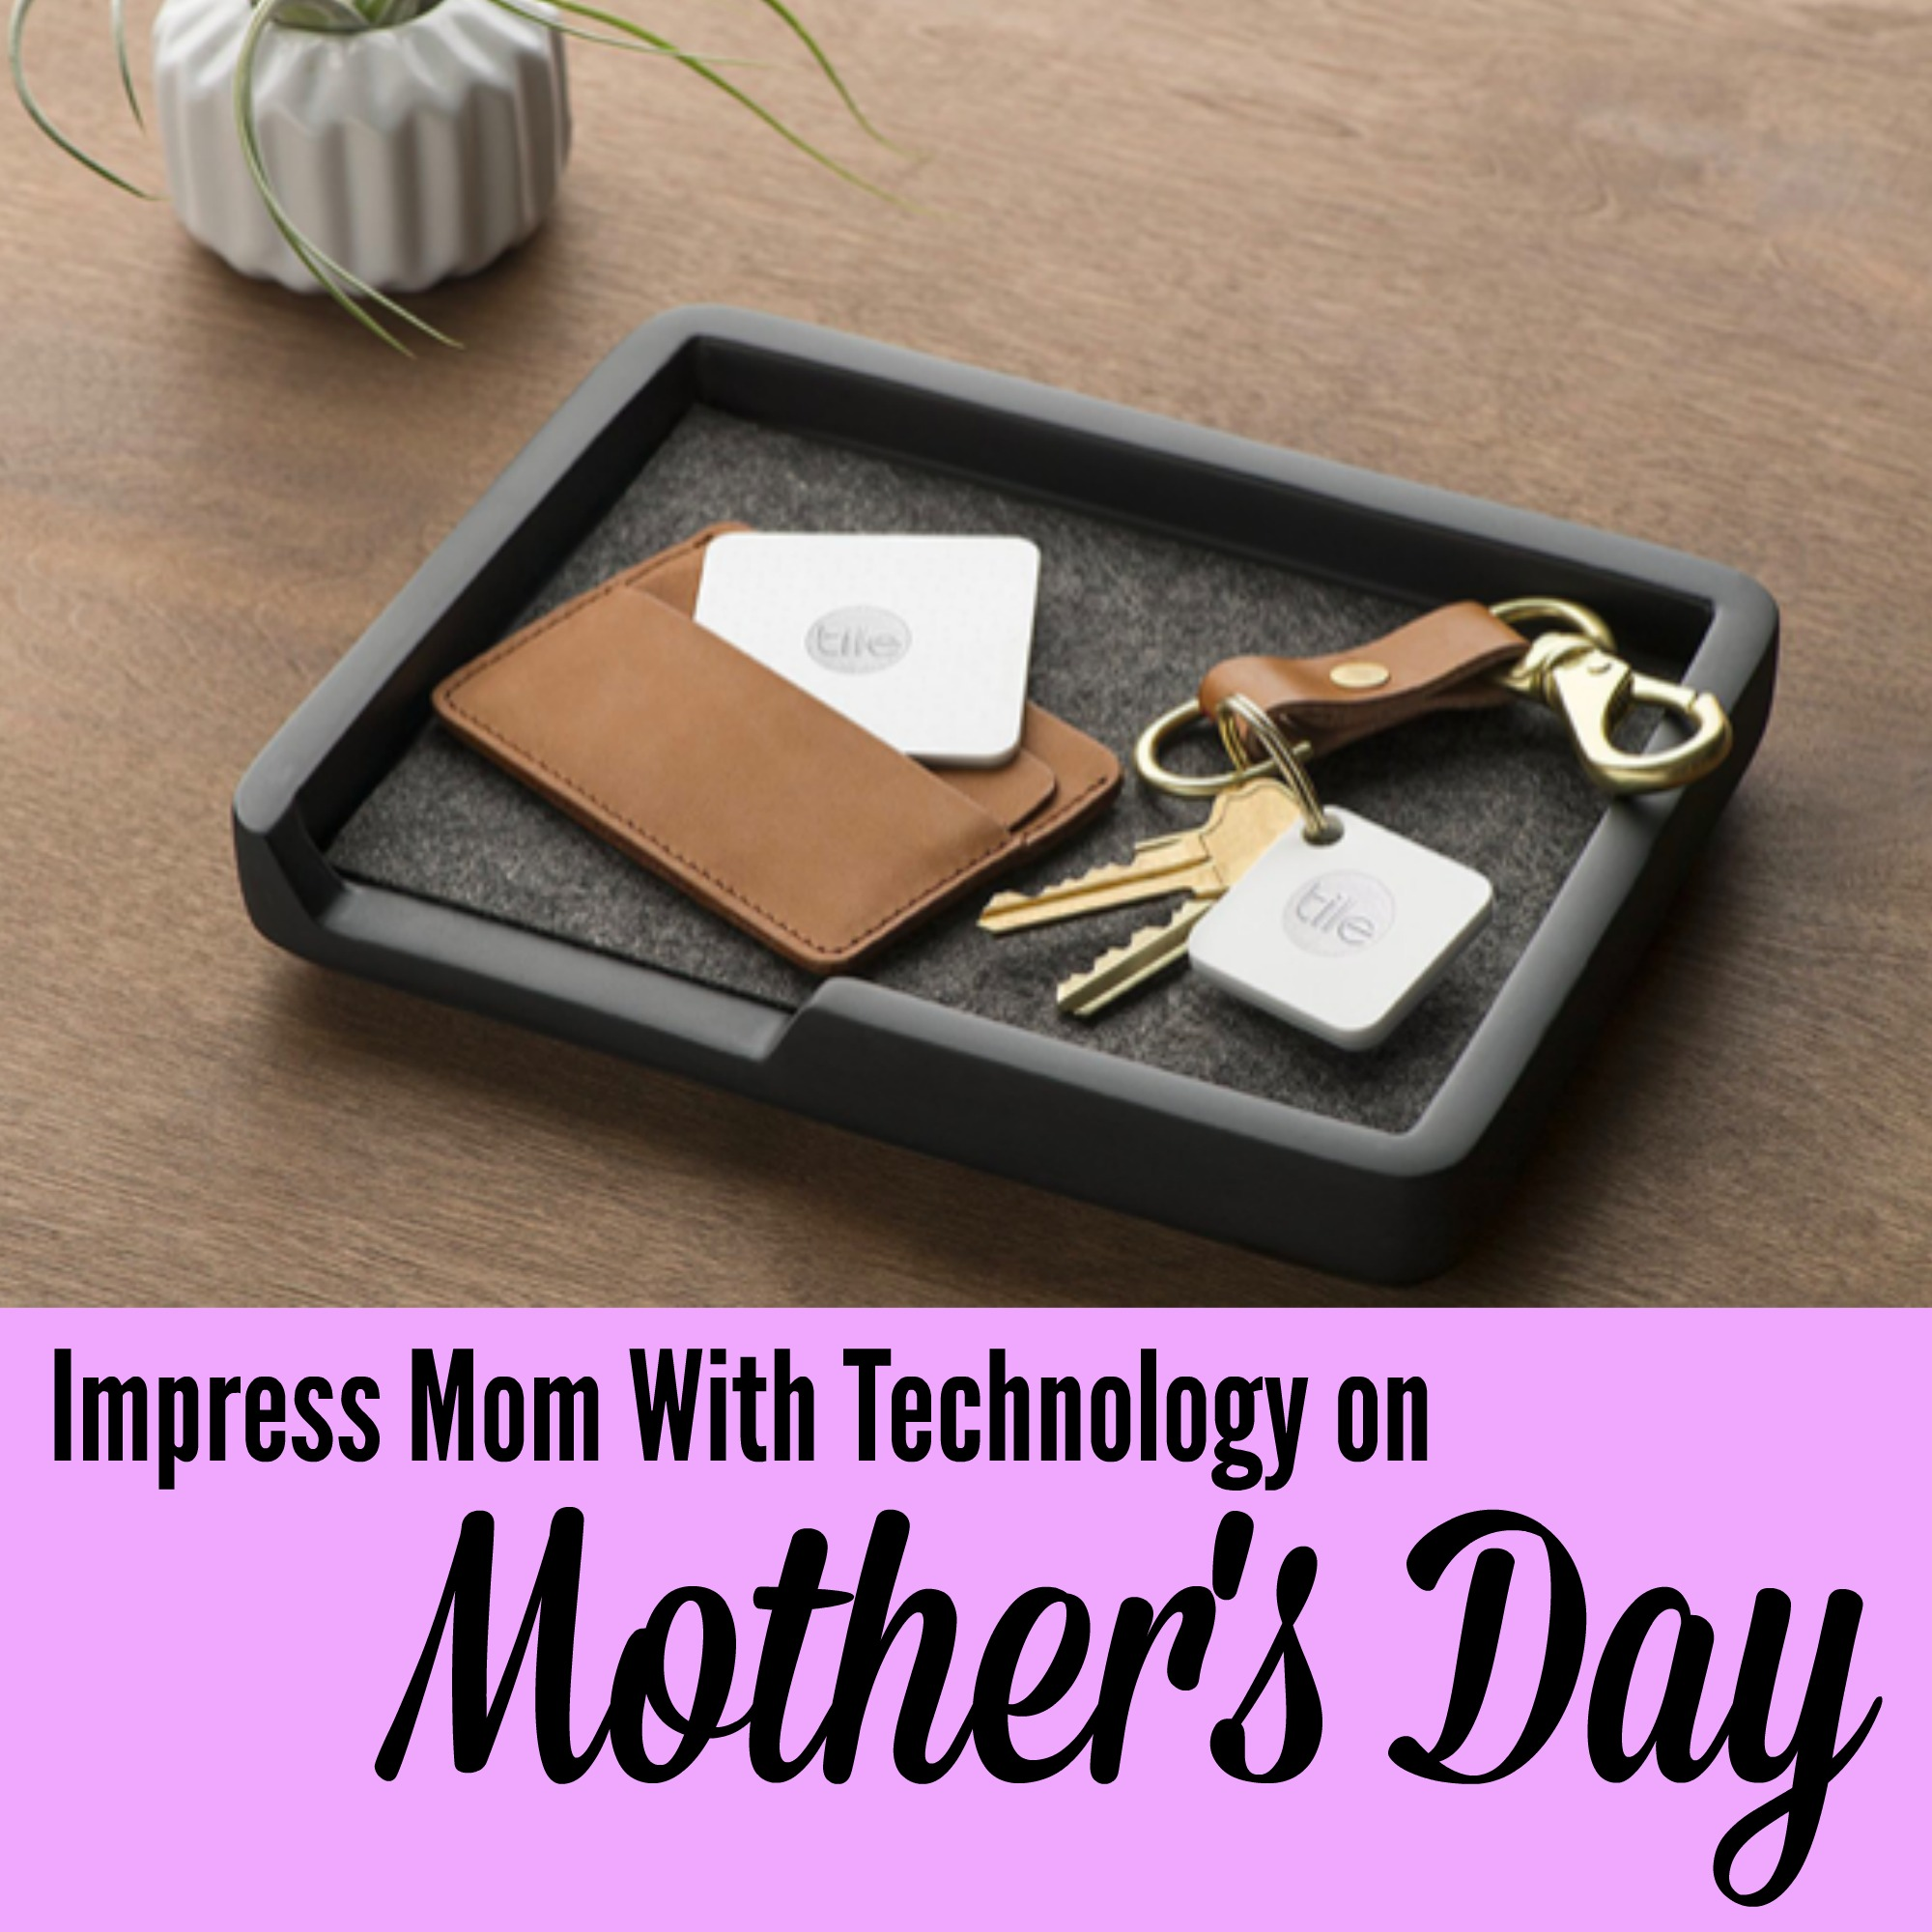 Impress Mom With Technology On Mother's Day